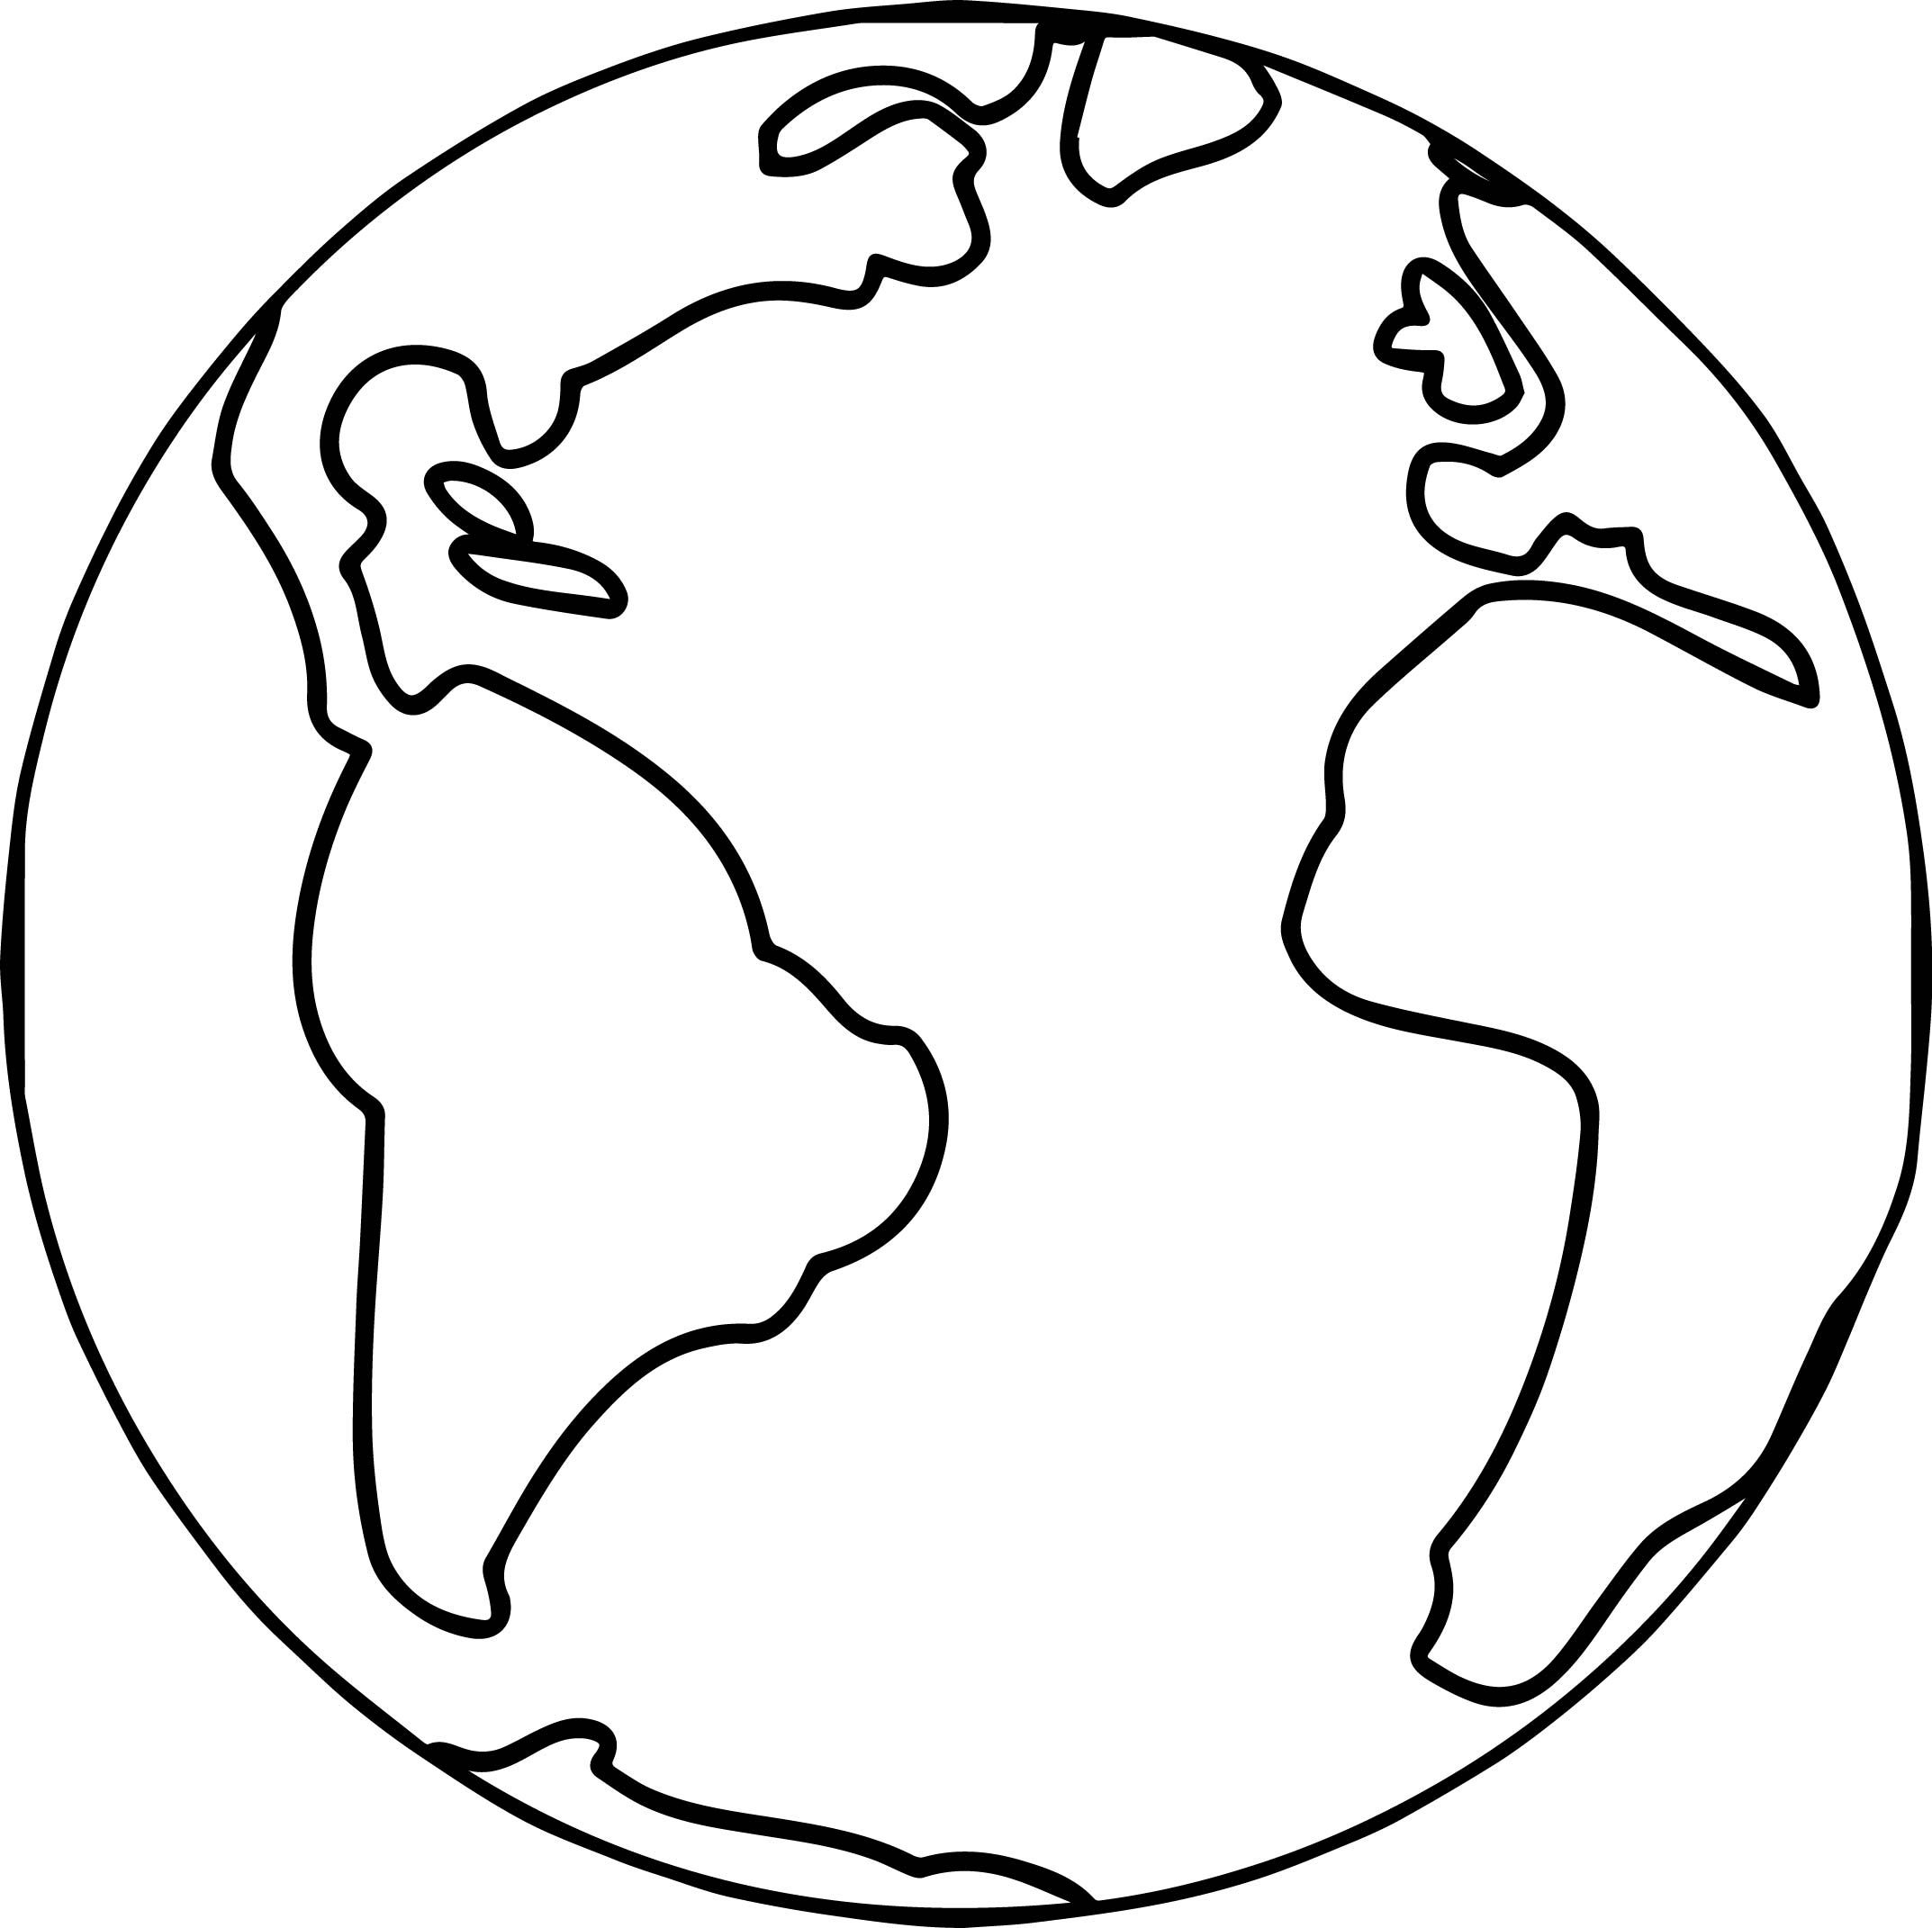 Earth Globe World Coloring Page Earth Coloring Pages Planet Coloring Pages Earth Day Coloring Pages